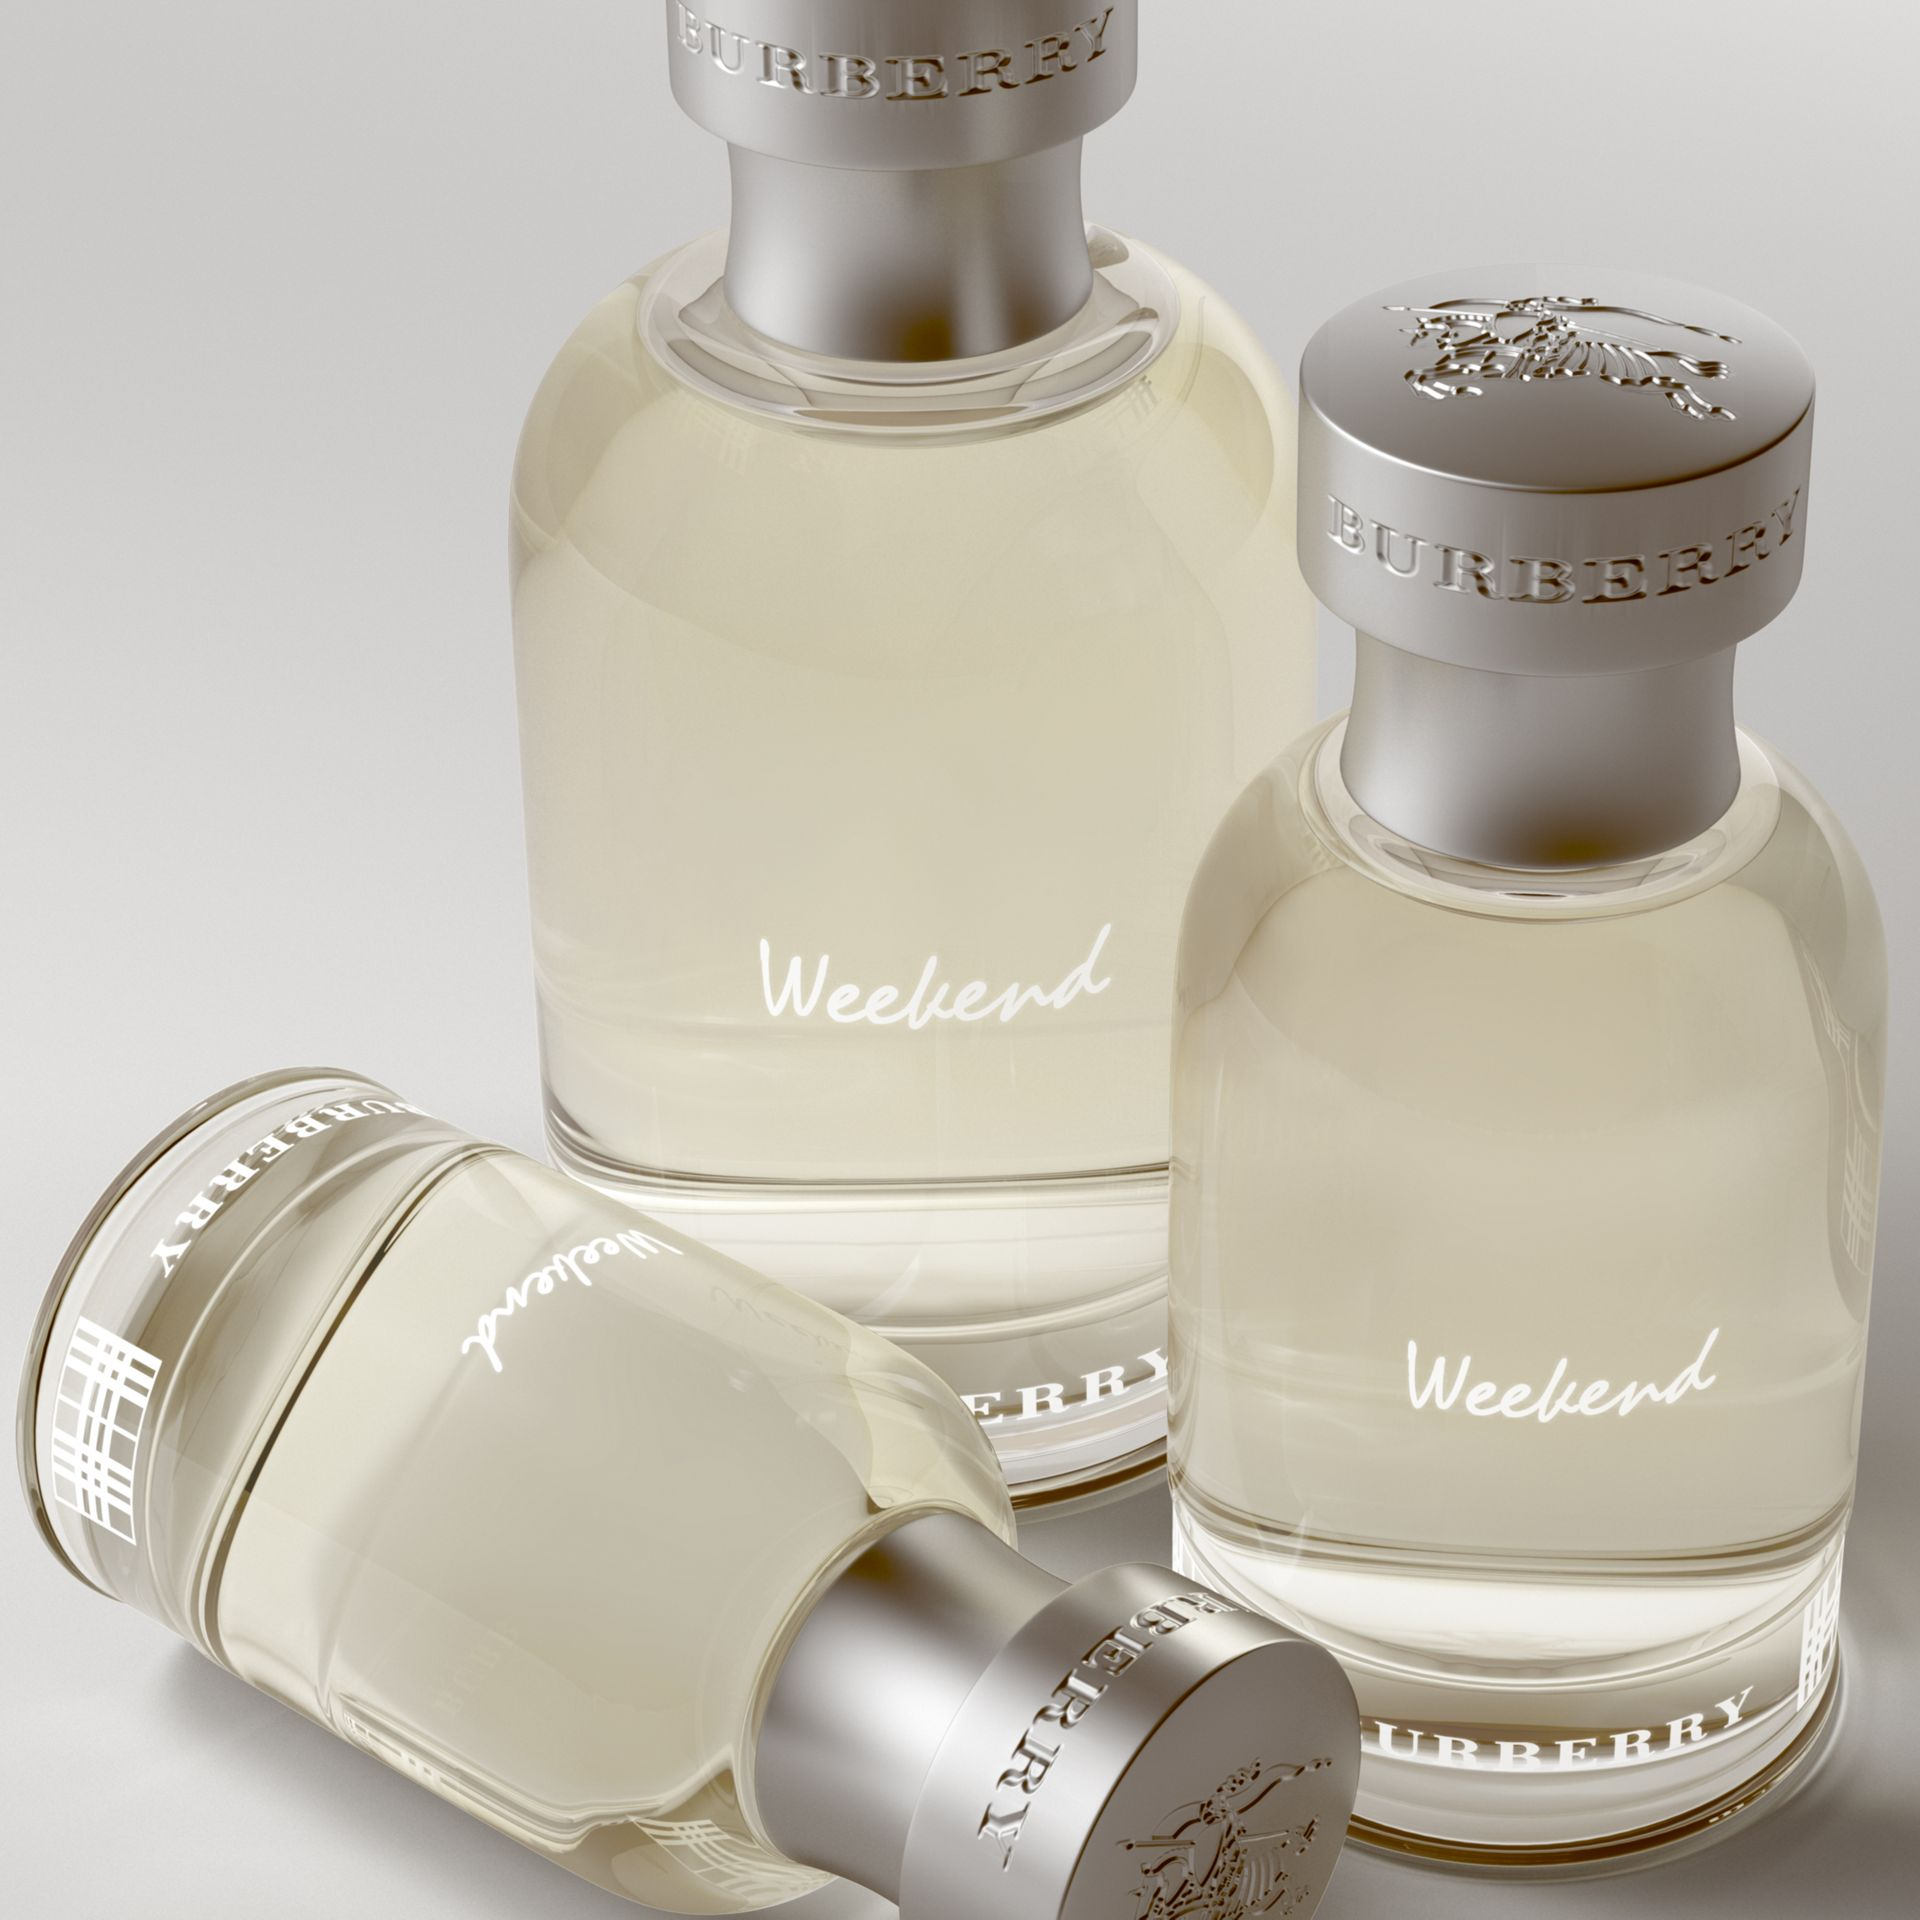 Burberry Weekend Eau de Toilette 100ml - Men | Burberry - gallery image 2